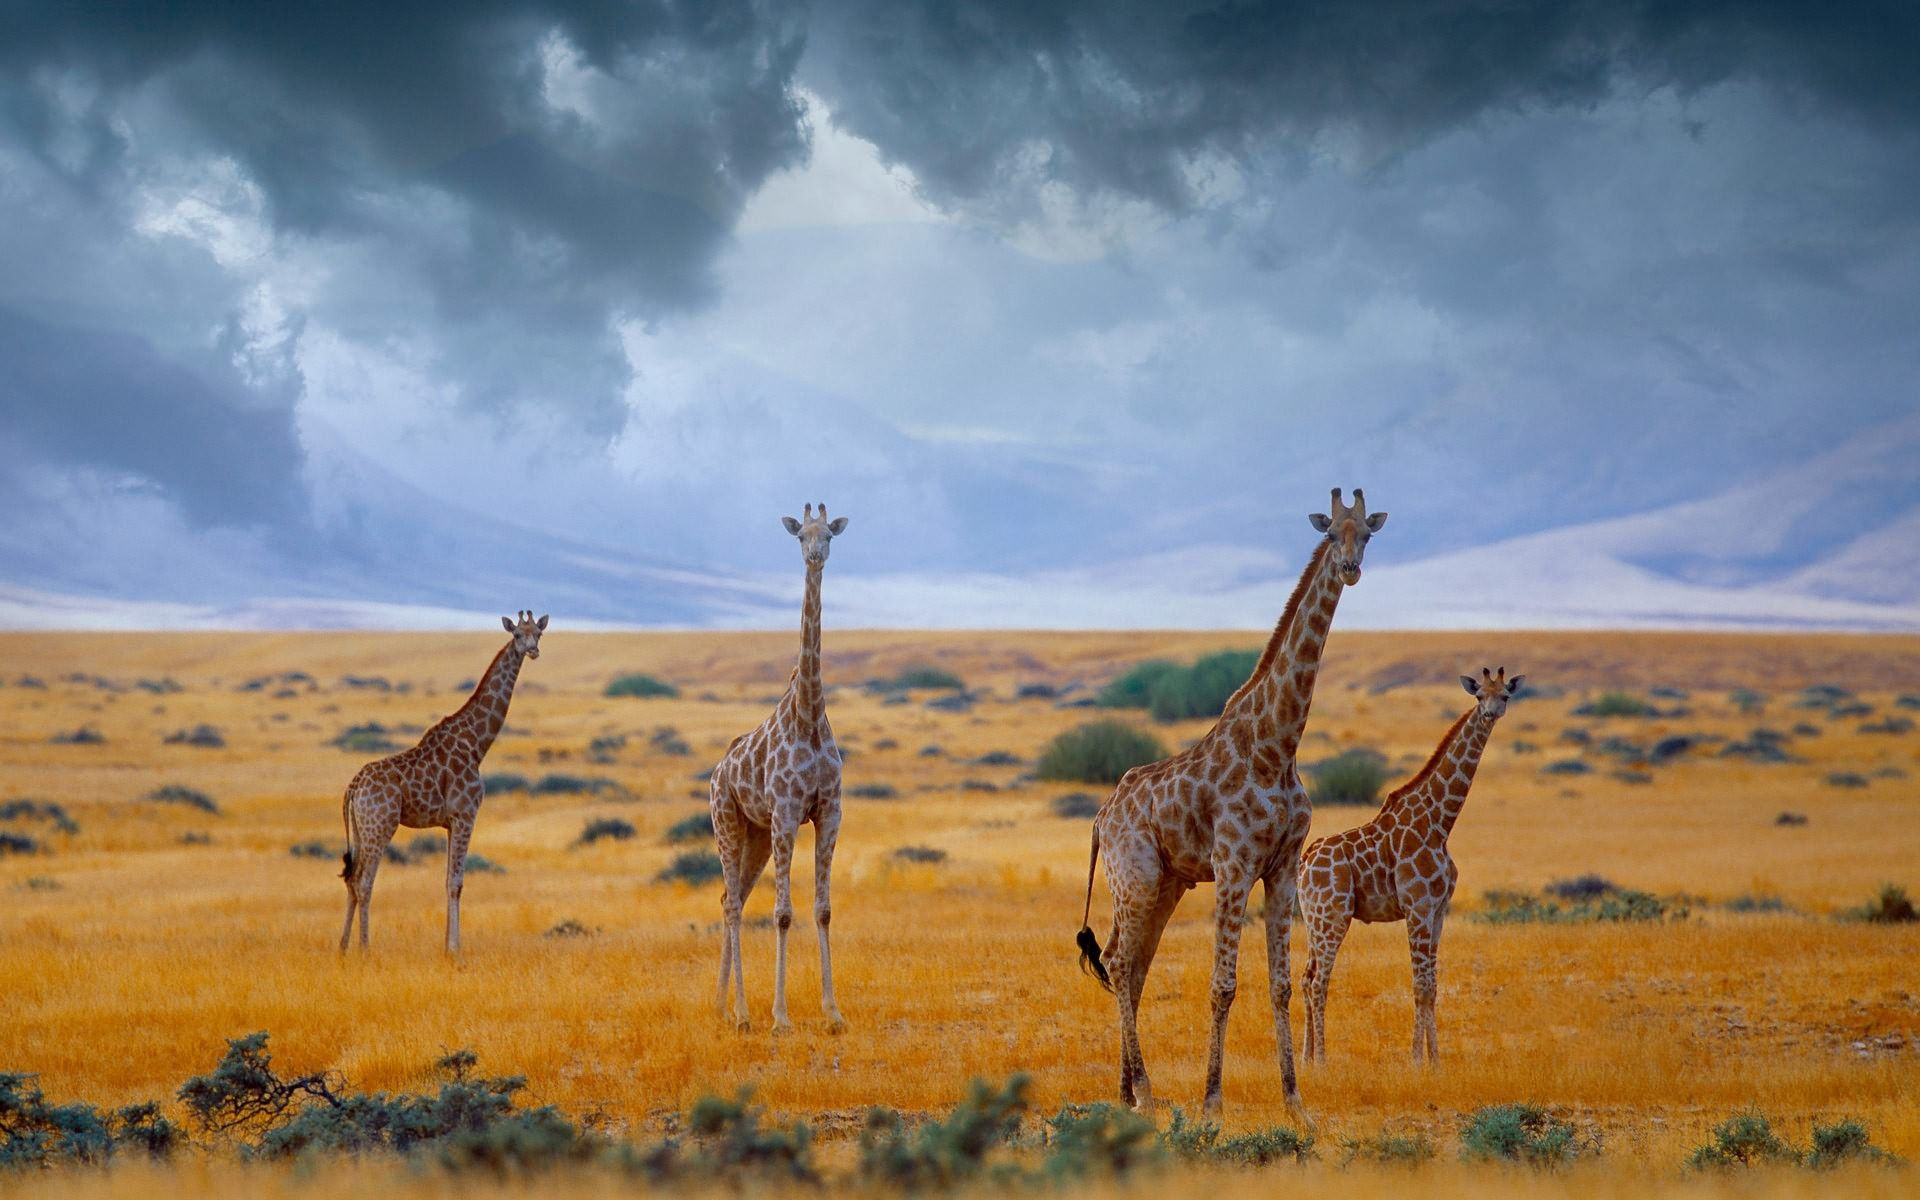 Giraffe HD Wallpapers And Backgrounds 1920x1080 Wallpaper 44